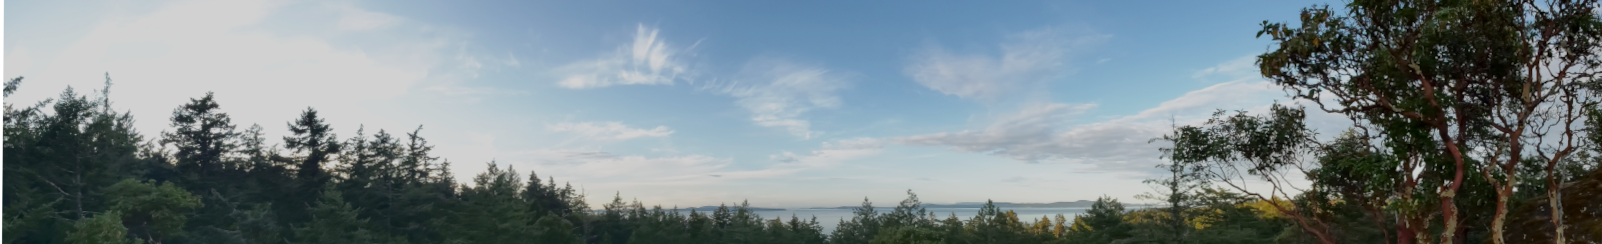 Wide photo with ocean peaking through a fir forest canopy. Blue sky with six wispy clouds. Arbutus in right foreground.